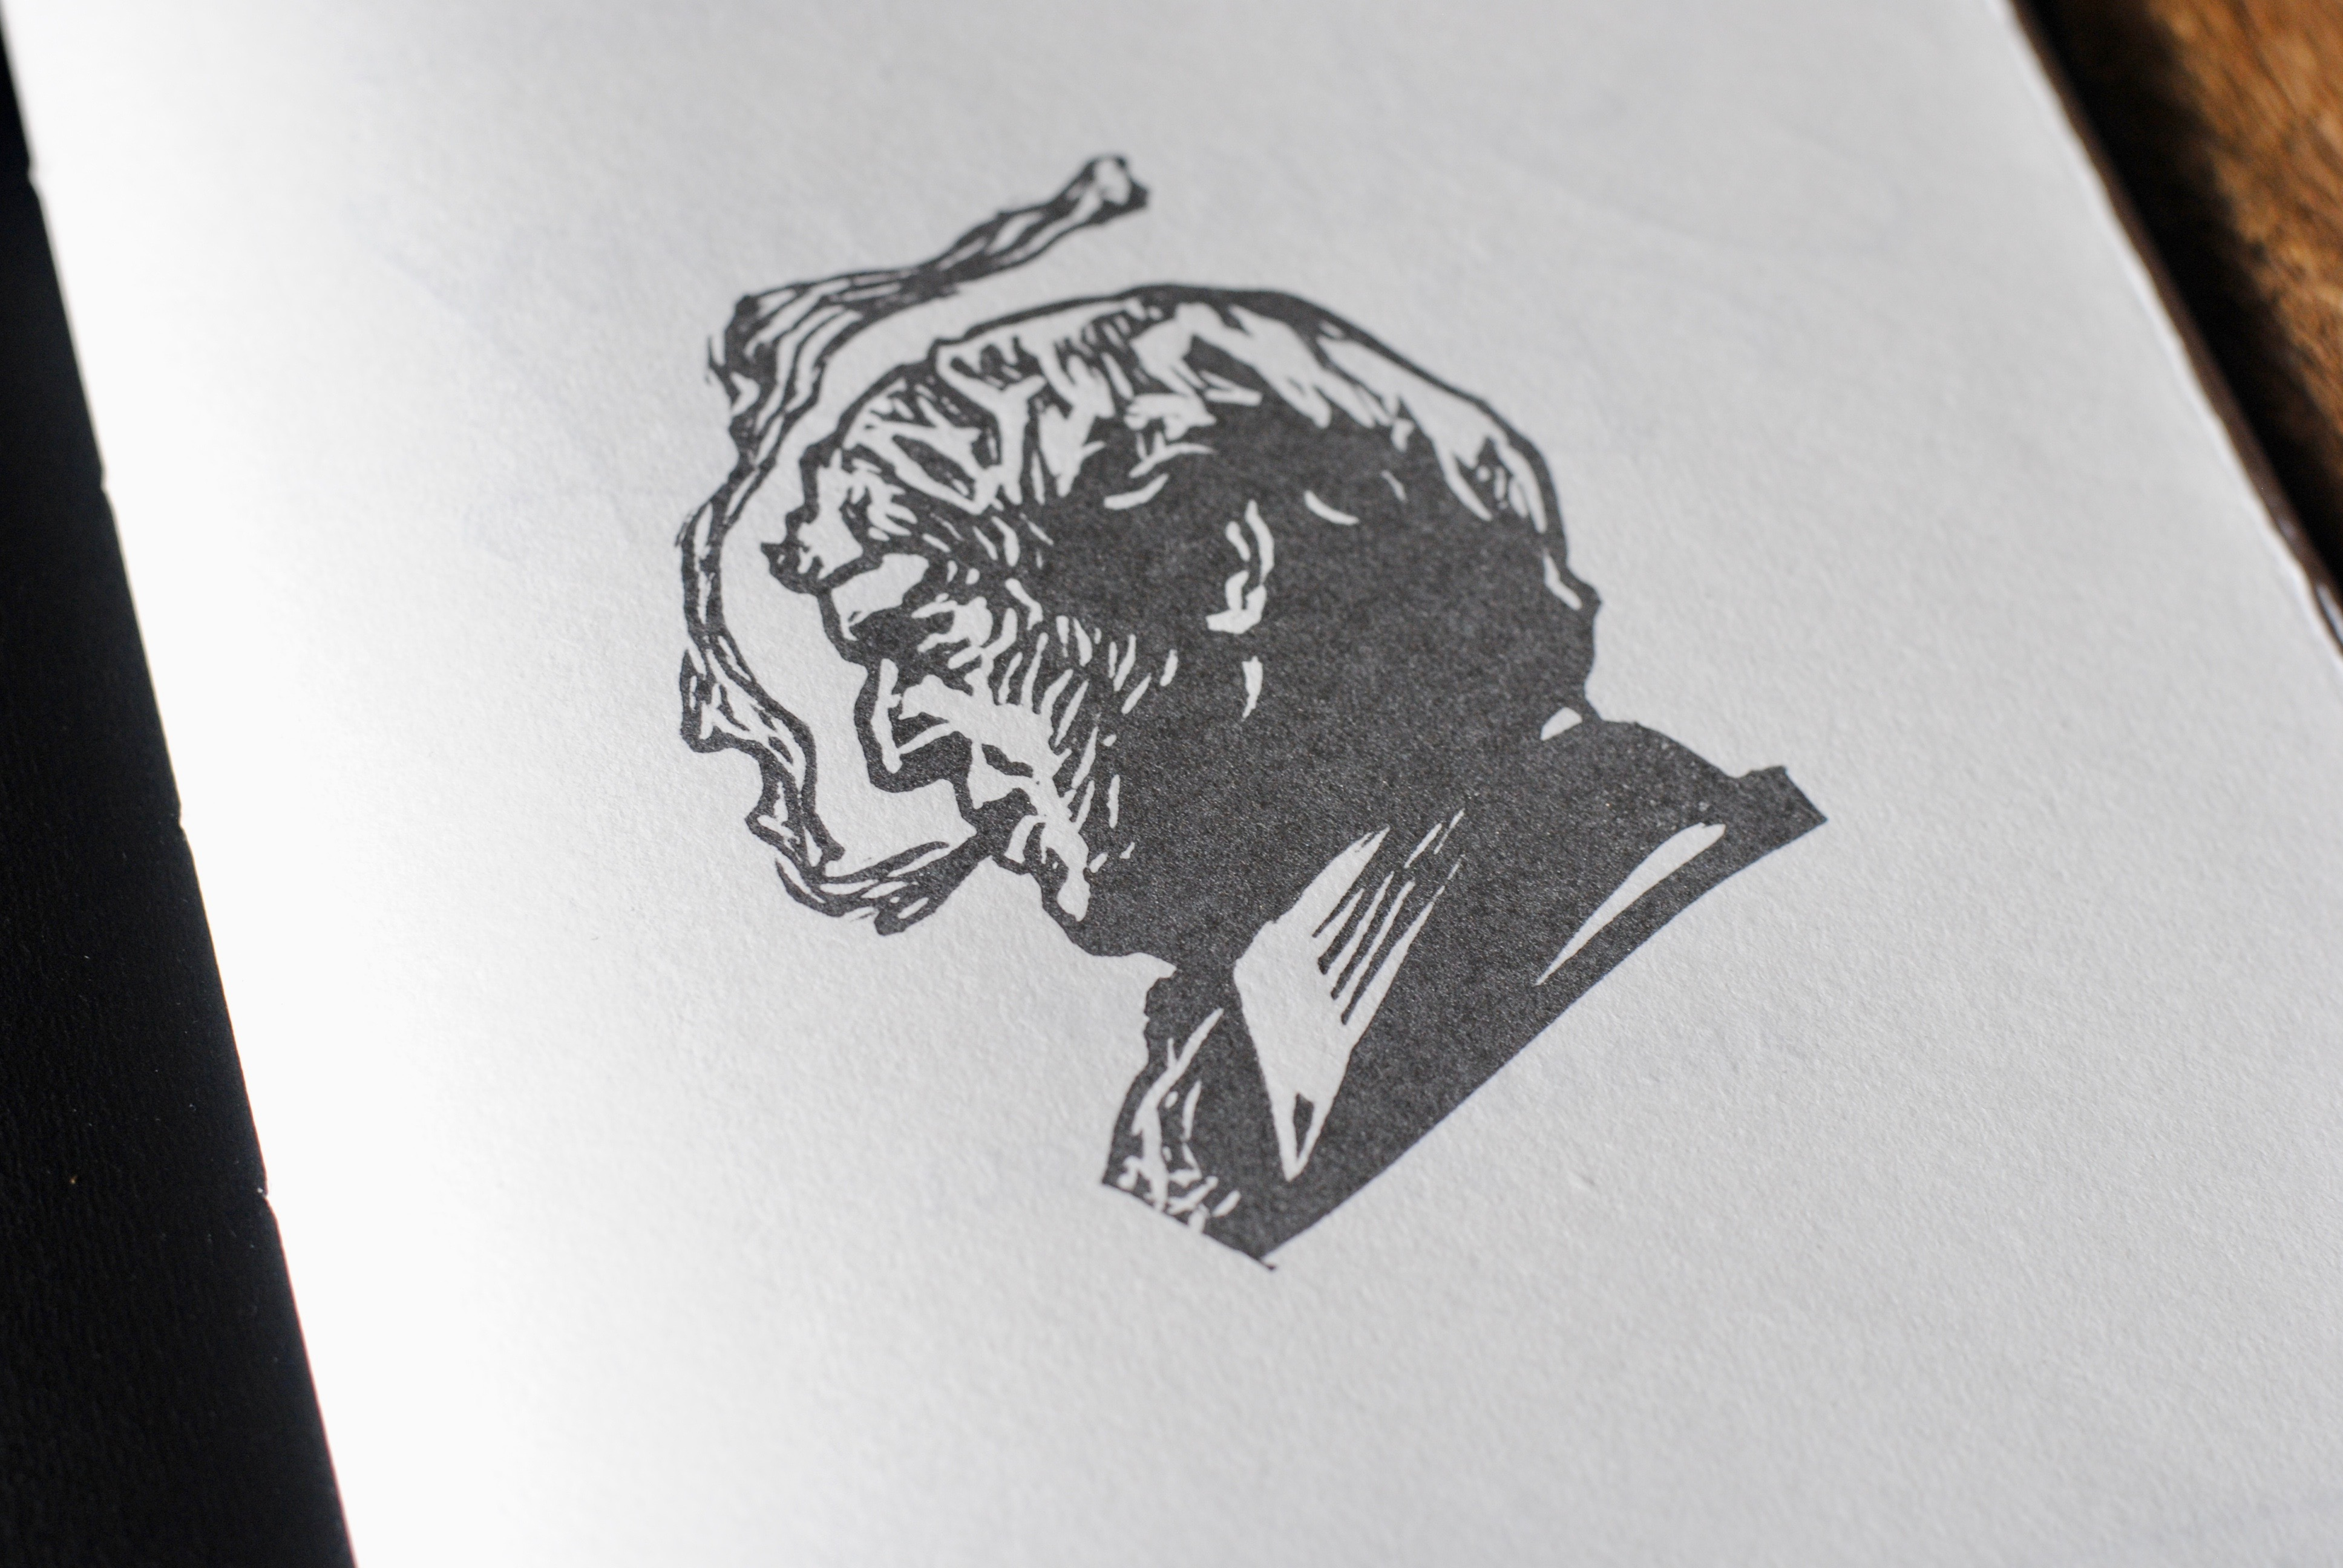 New Burgess Publications From Incline Press  The International  The Broadsheet Consisted Of An Extract From Burgesss Poem An Essay On  Censorship Printed From Metal Type And Accompanied By A Linocut Portrait  Of Anthony